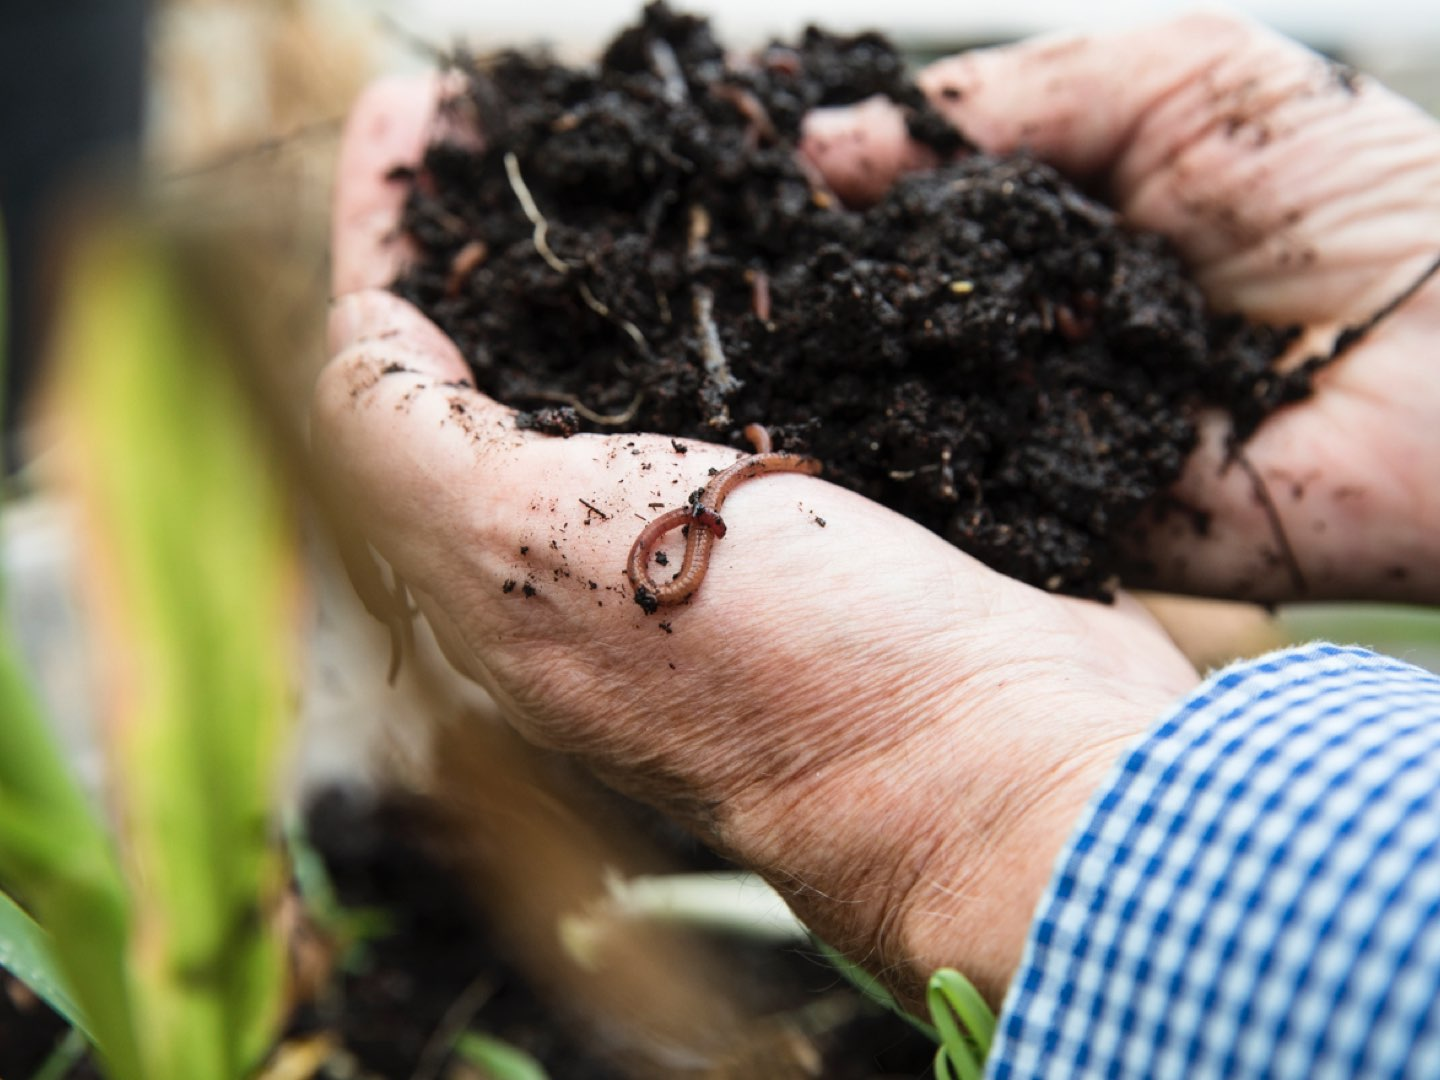 Close-up of Edward Guinan's hands covered in soil and earthworms.